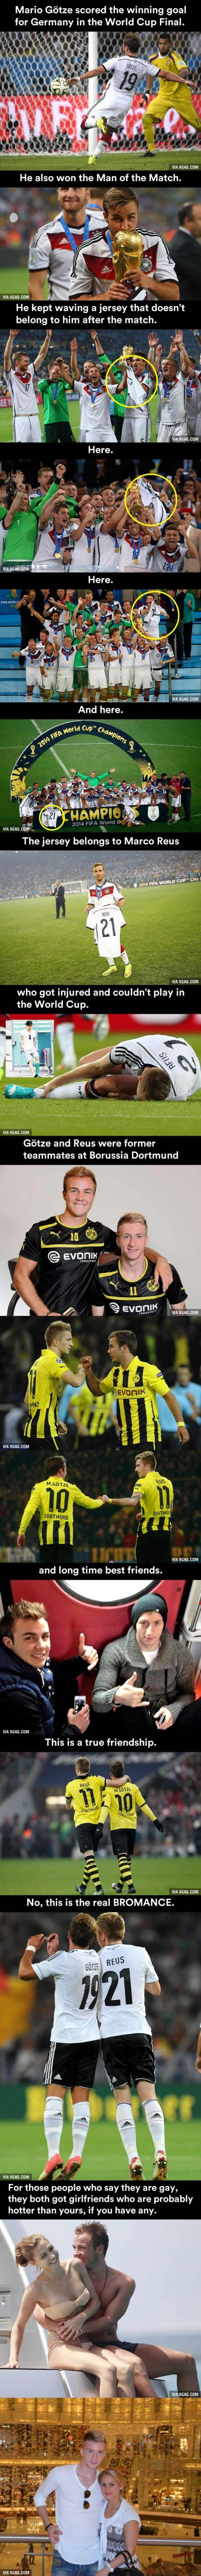 Mystery solved: Why did Mario Götze keep waving a jersey that doesn't belong to him?